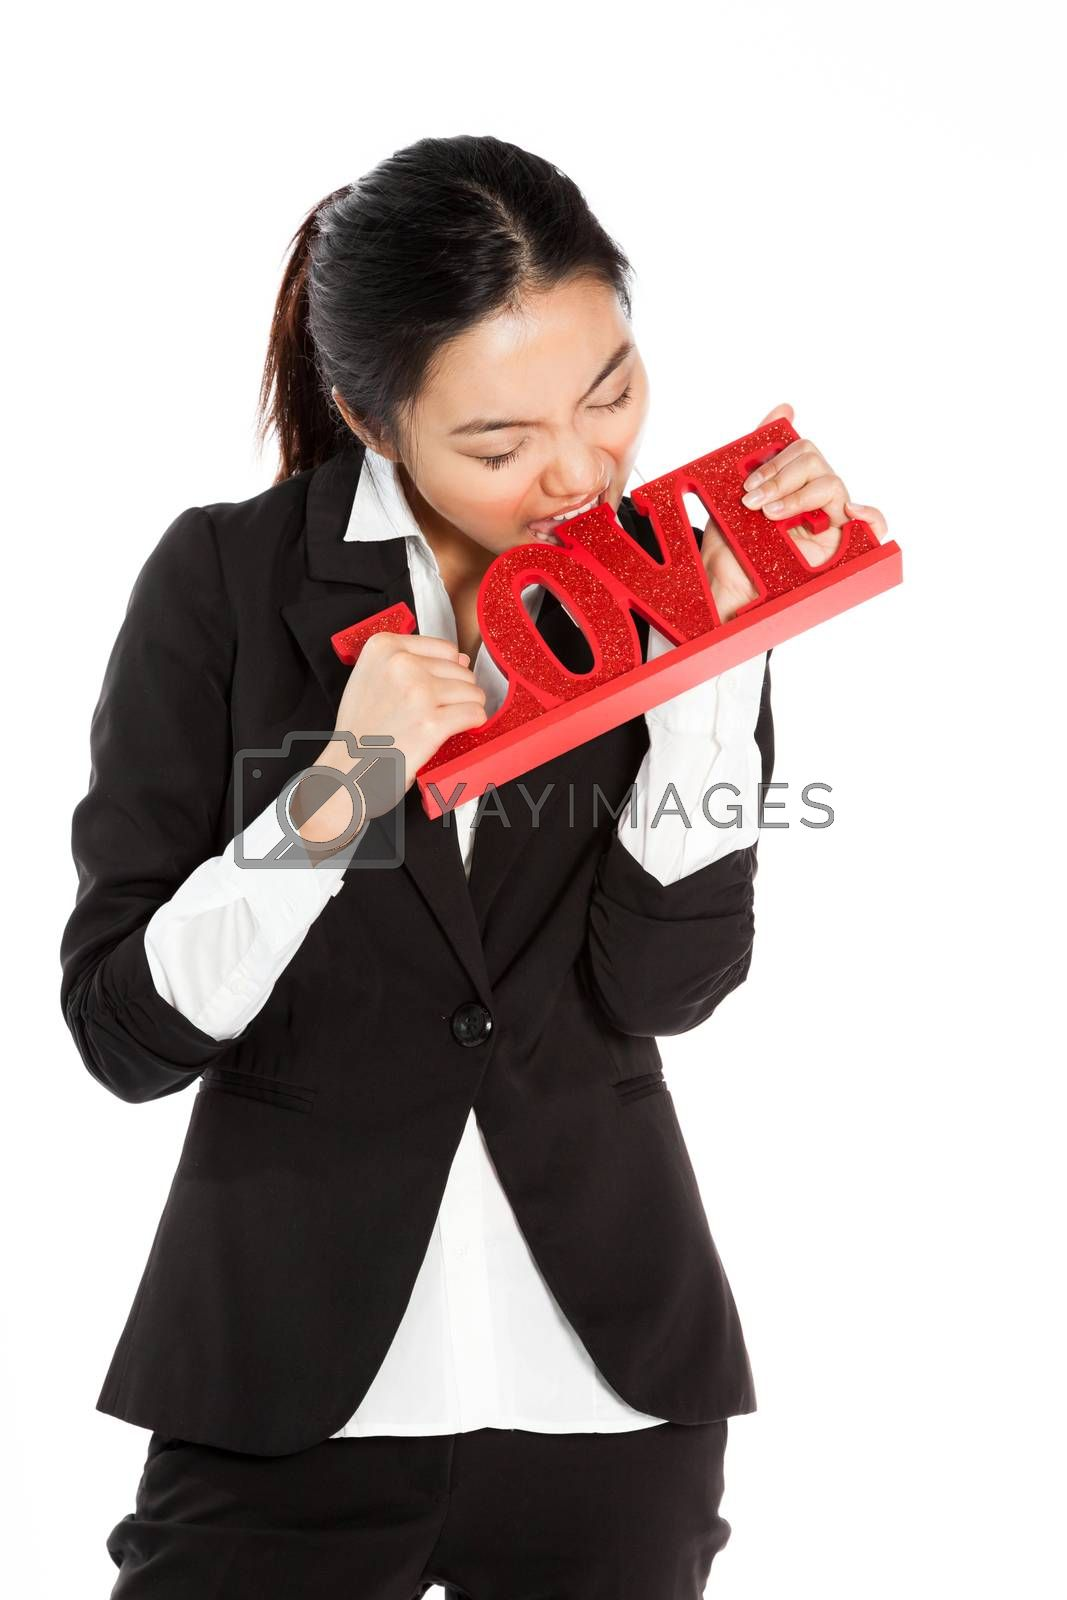 Romantic people in love shot in studio isolated on a white background